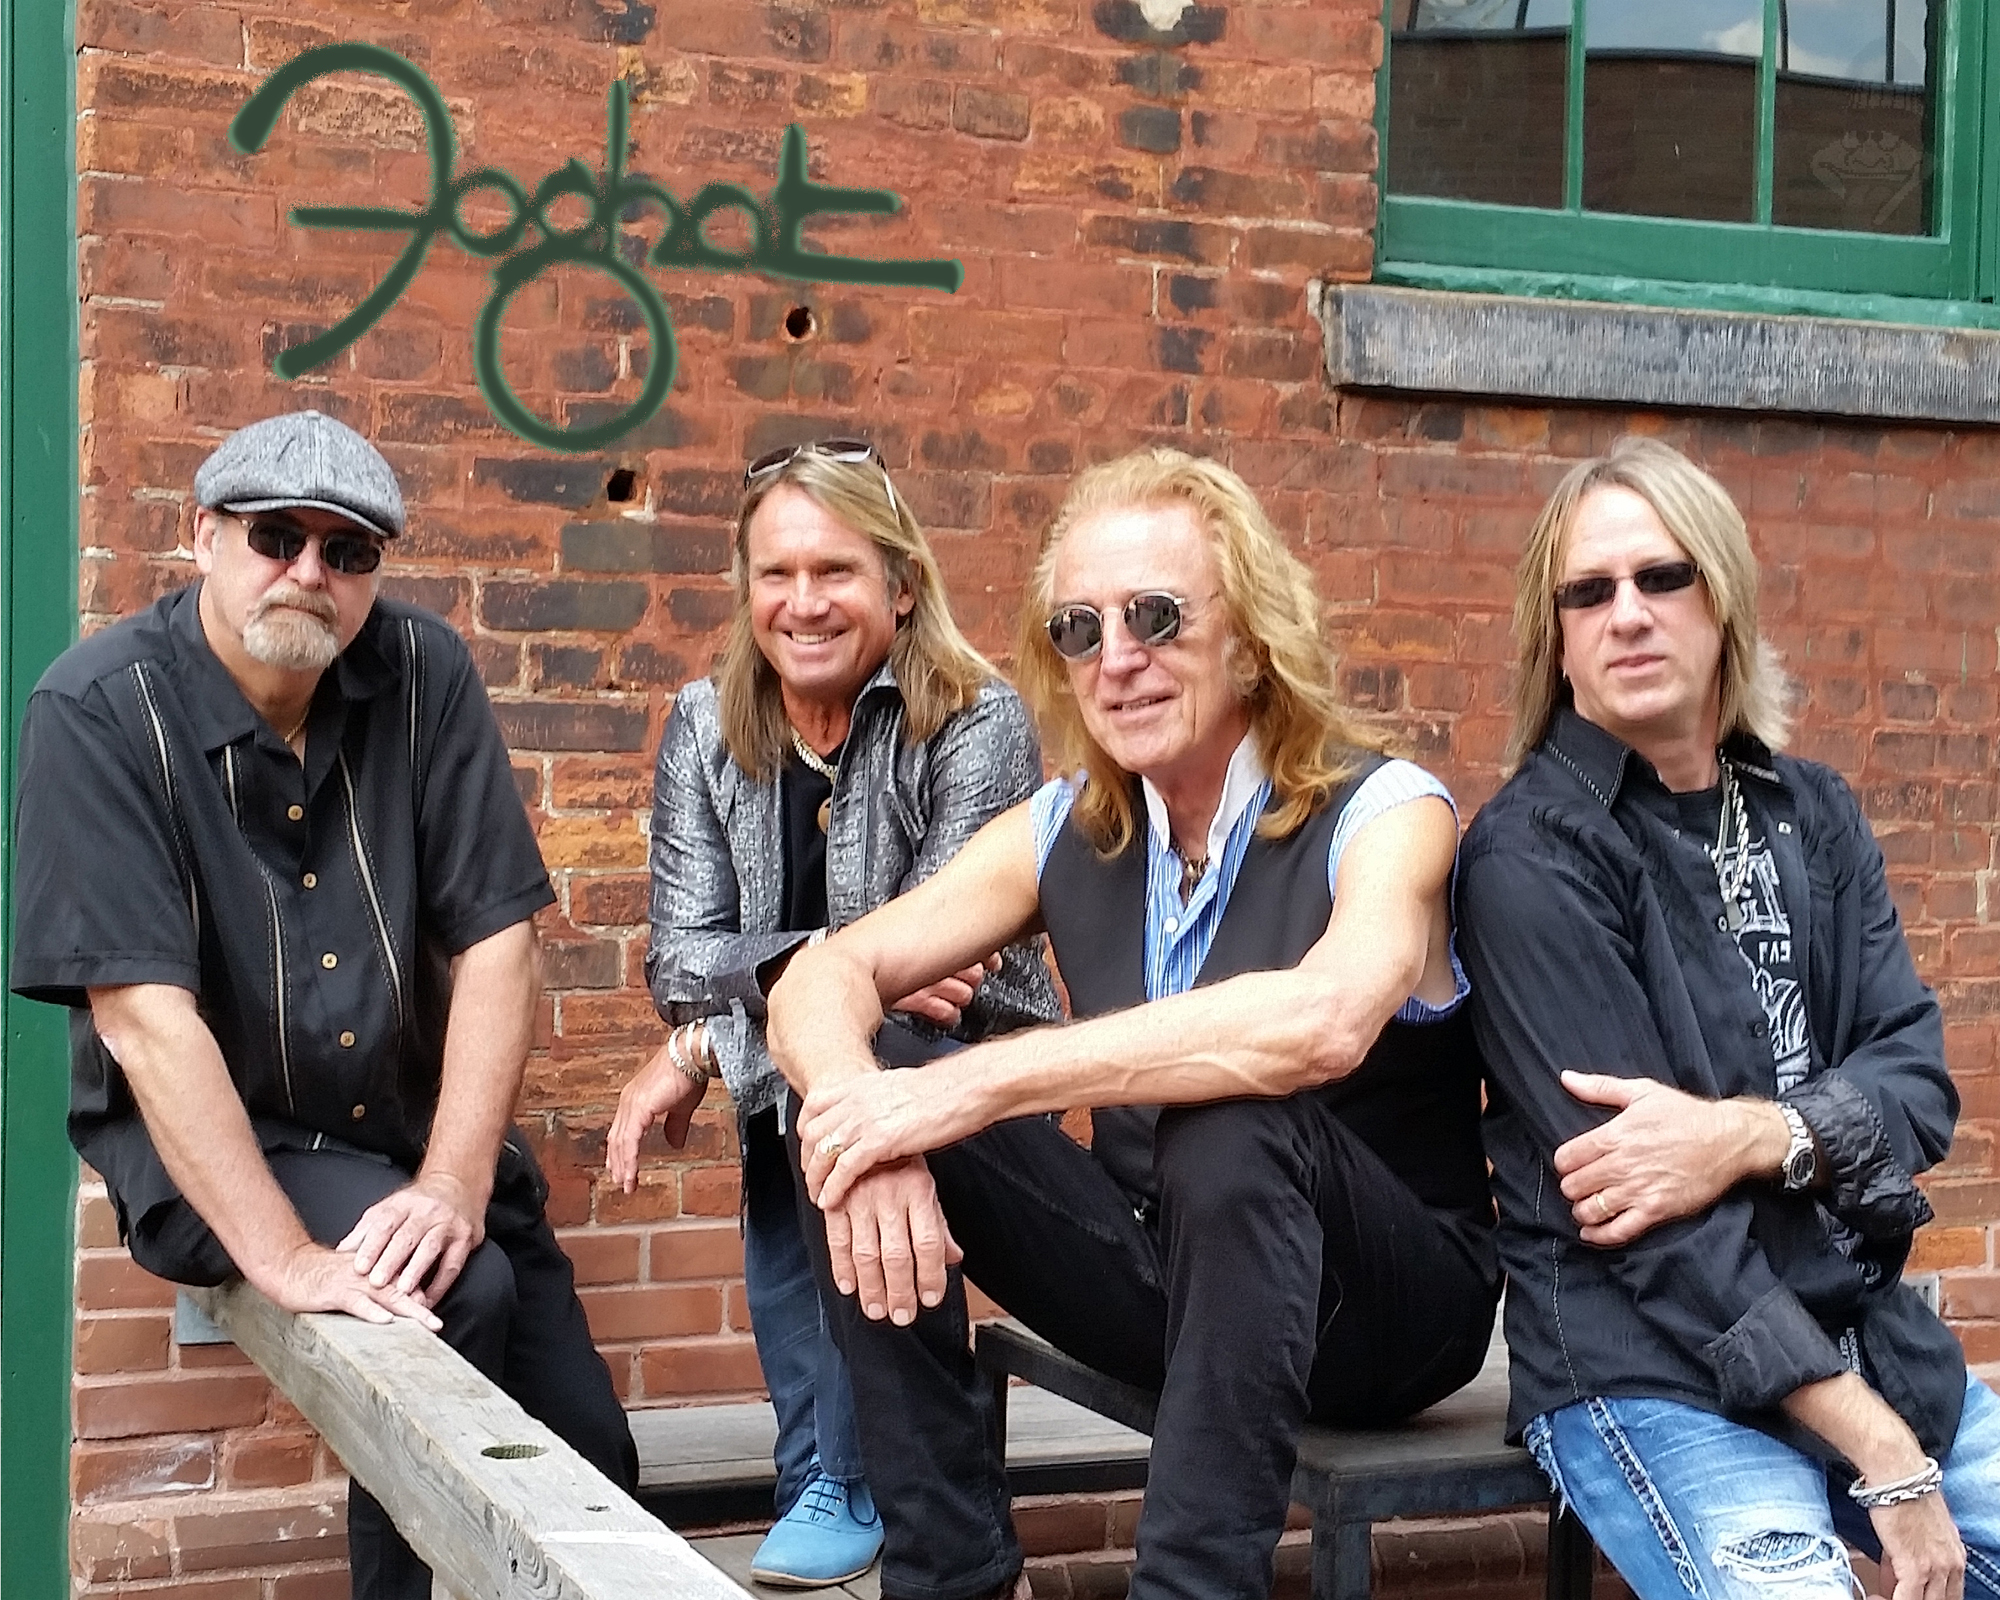 Classic rockers Foghat and Savoy Brown play at Kirby Center in Wilkes Barre on Sept 1